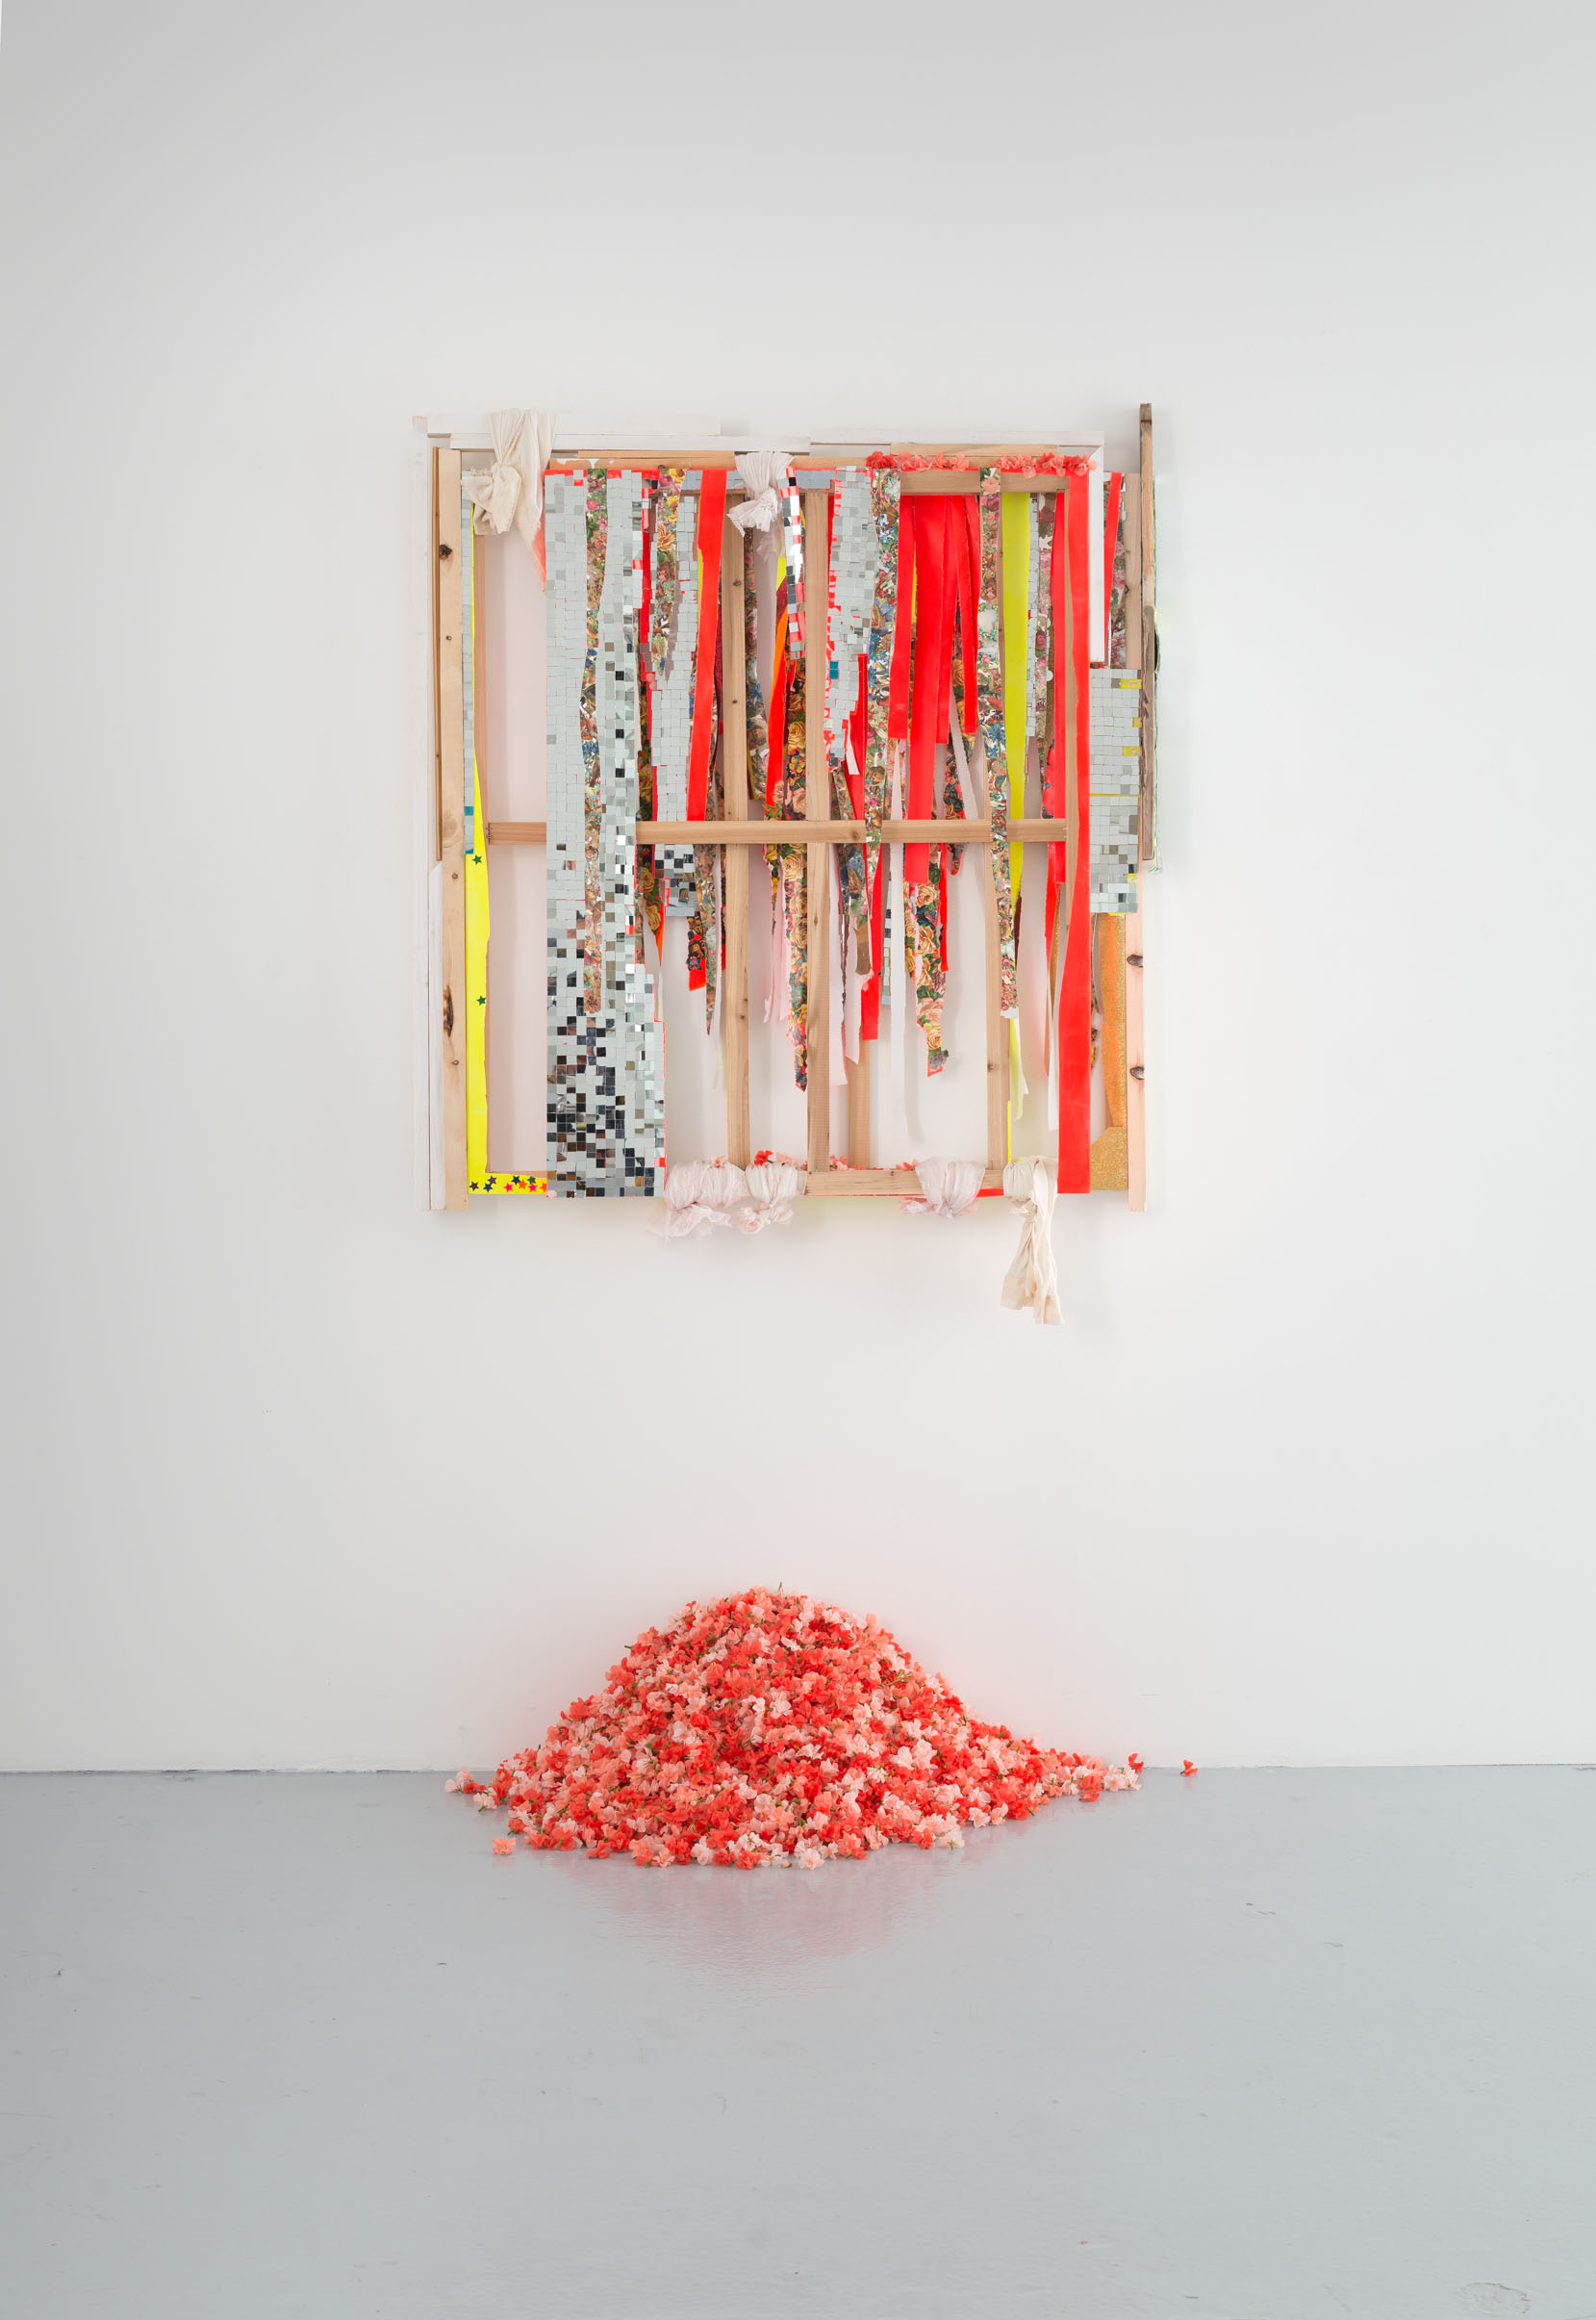 Stretcher frame 1, 2 & 3 (No Content)  (2013/14), mirror mosaic, acrylic, glitter, wood, glossy pictures, staples, silk flowers, nails, canvas, stretcher frames, Dimensions variable/wallpiece 155 x 125 x 18 cm